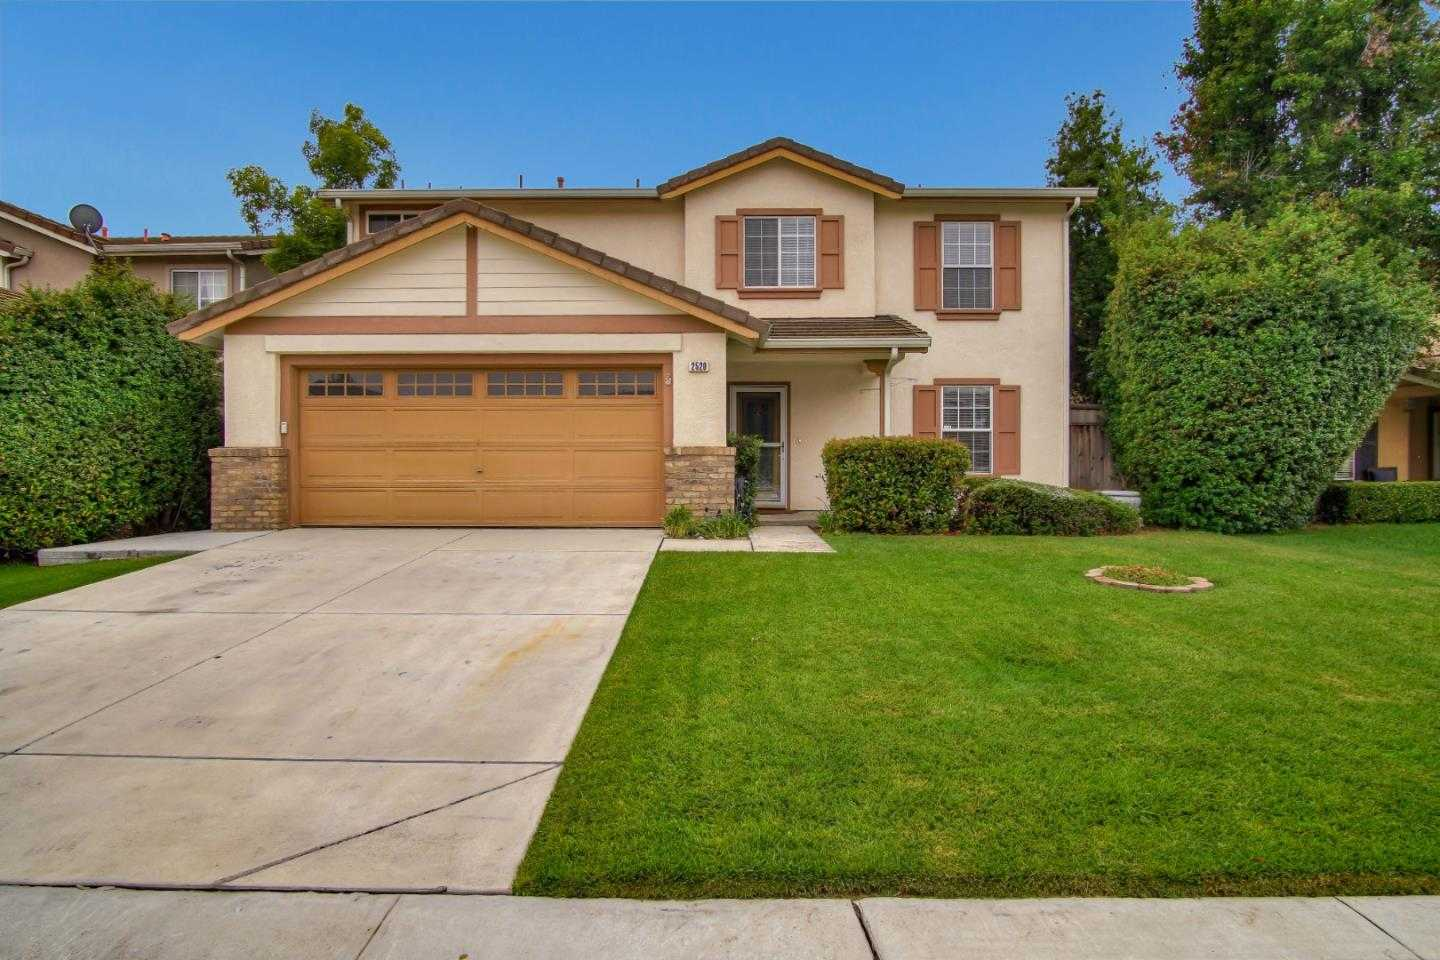 $689,000 - 4Br/3Ba -  for Sale in Hollister